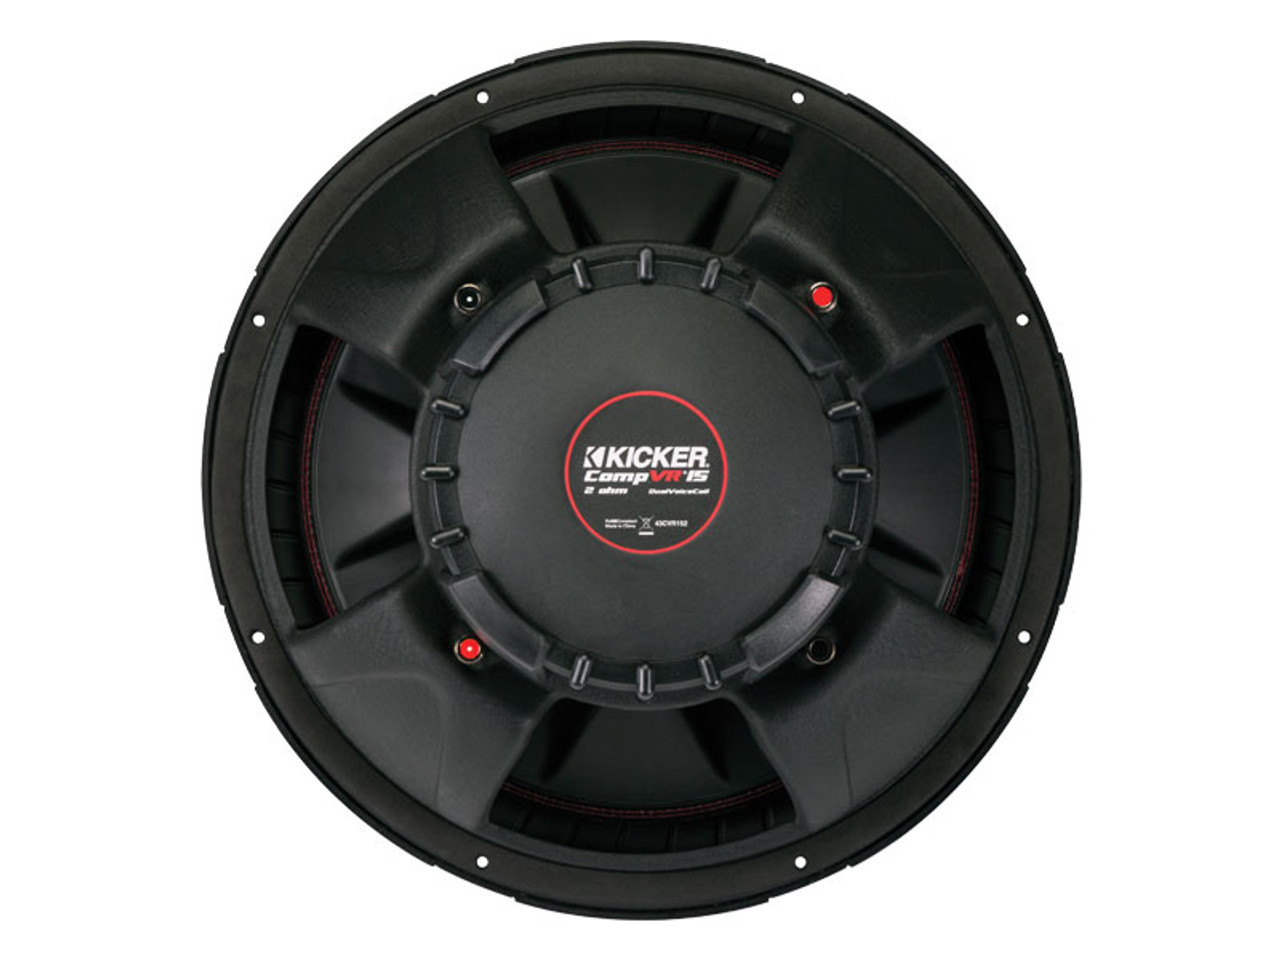 Kicker CompVR 15-Inch (38cm) Subwoofer, DVC, 2-Ohm, 500W - Creative ...